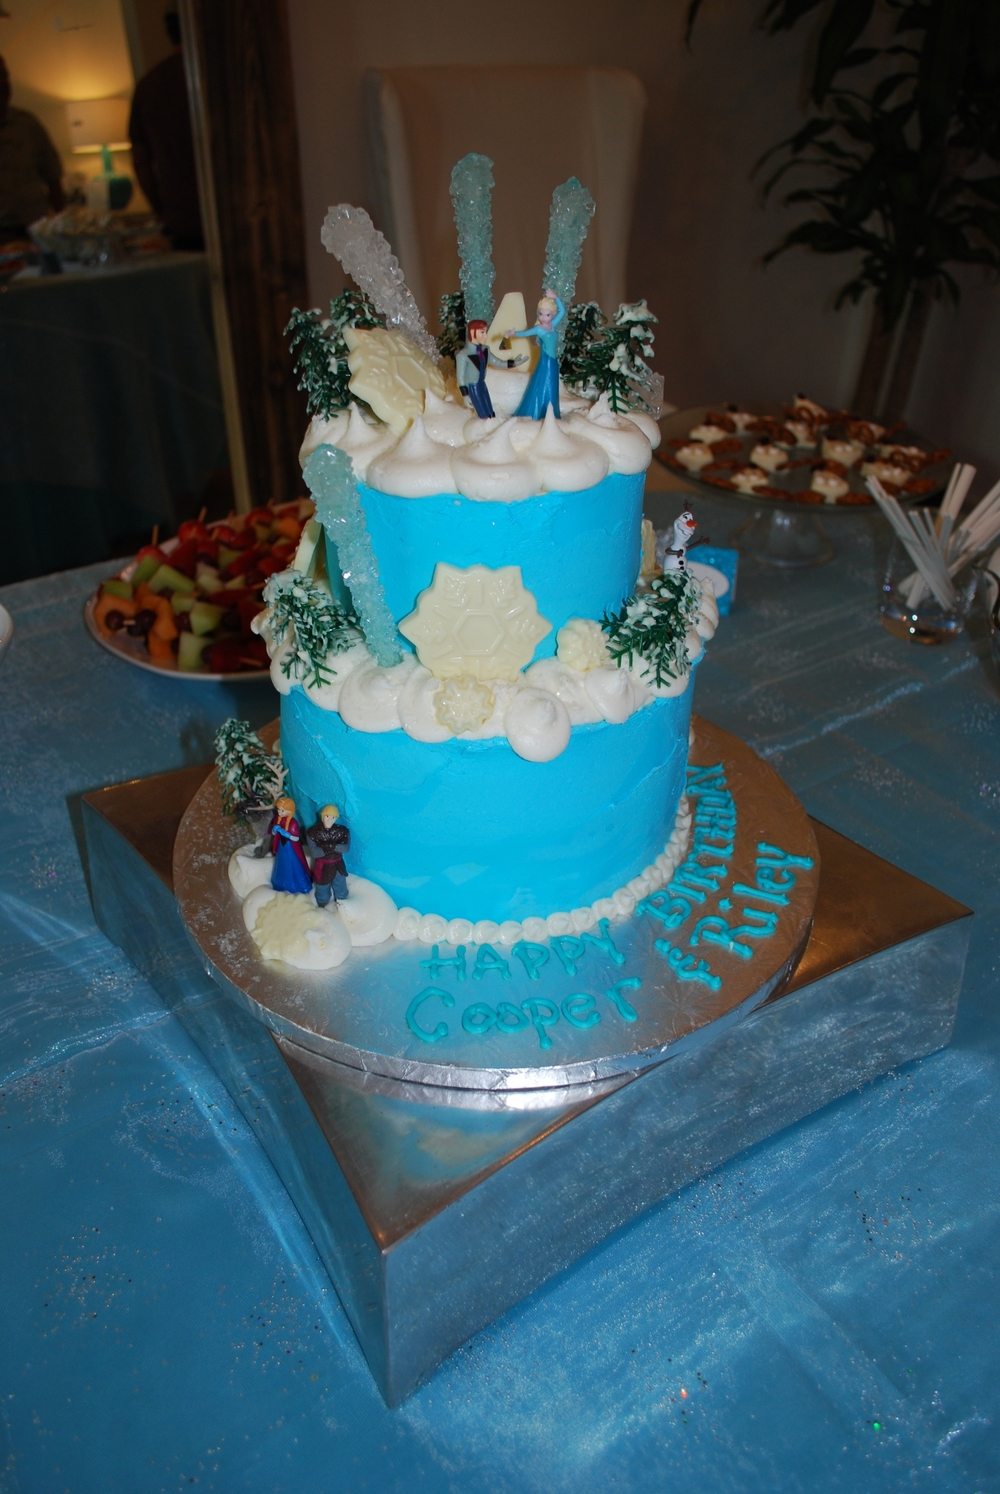 Frozen cake by  Sweet Henriettas  in Santa Rosa Beach.   She is THE BEST cake, cupcake, cakepop, etc. LOCAL vendor we have in Santa Rosa Beach (my own humble opinion)